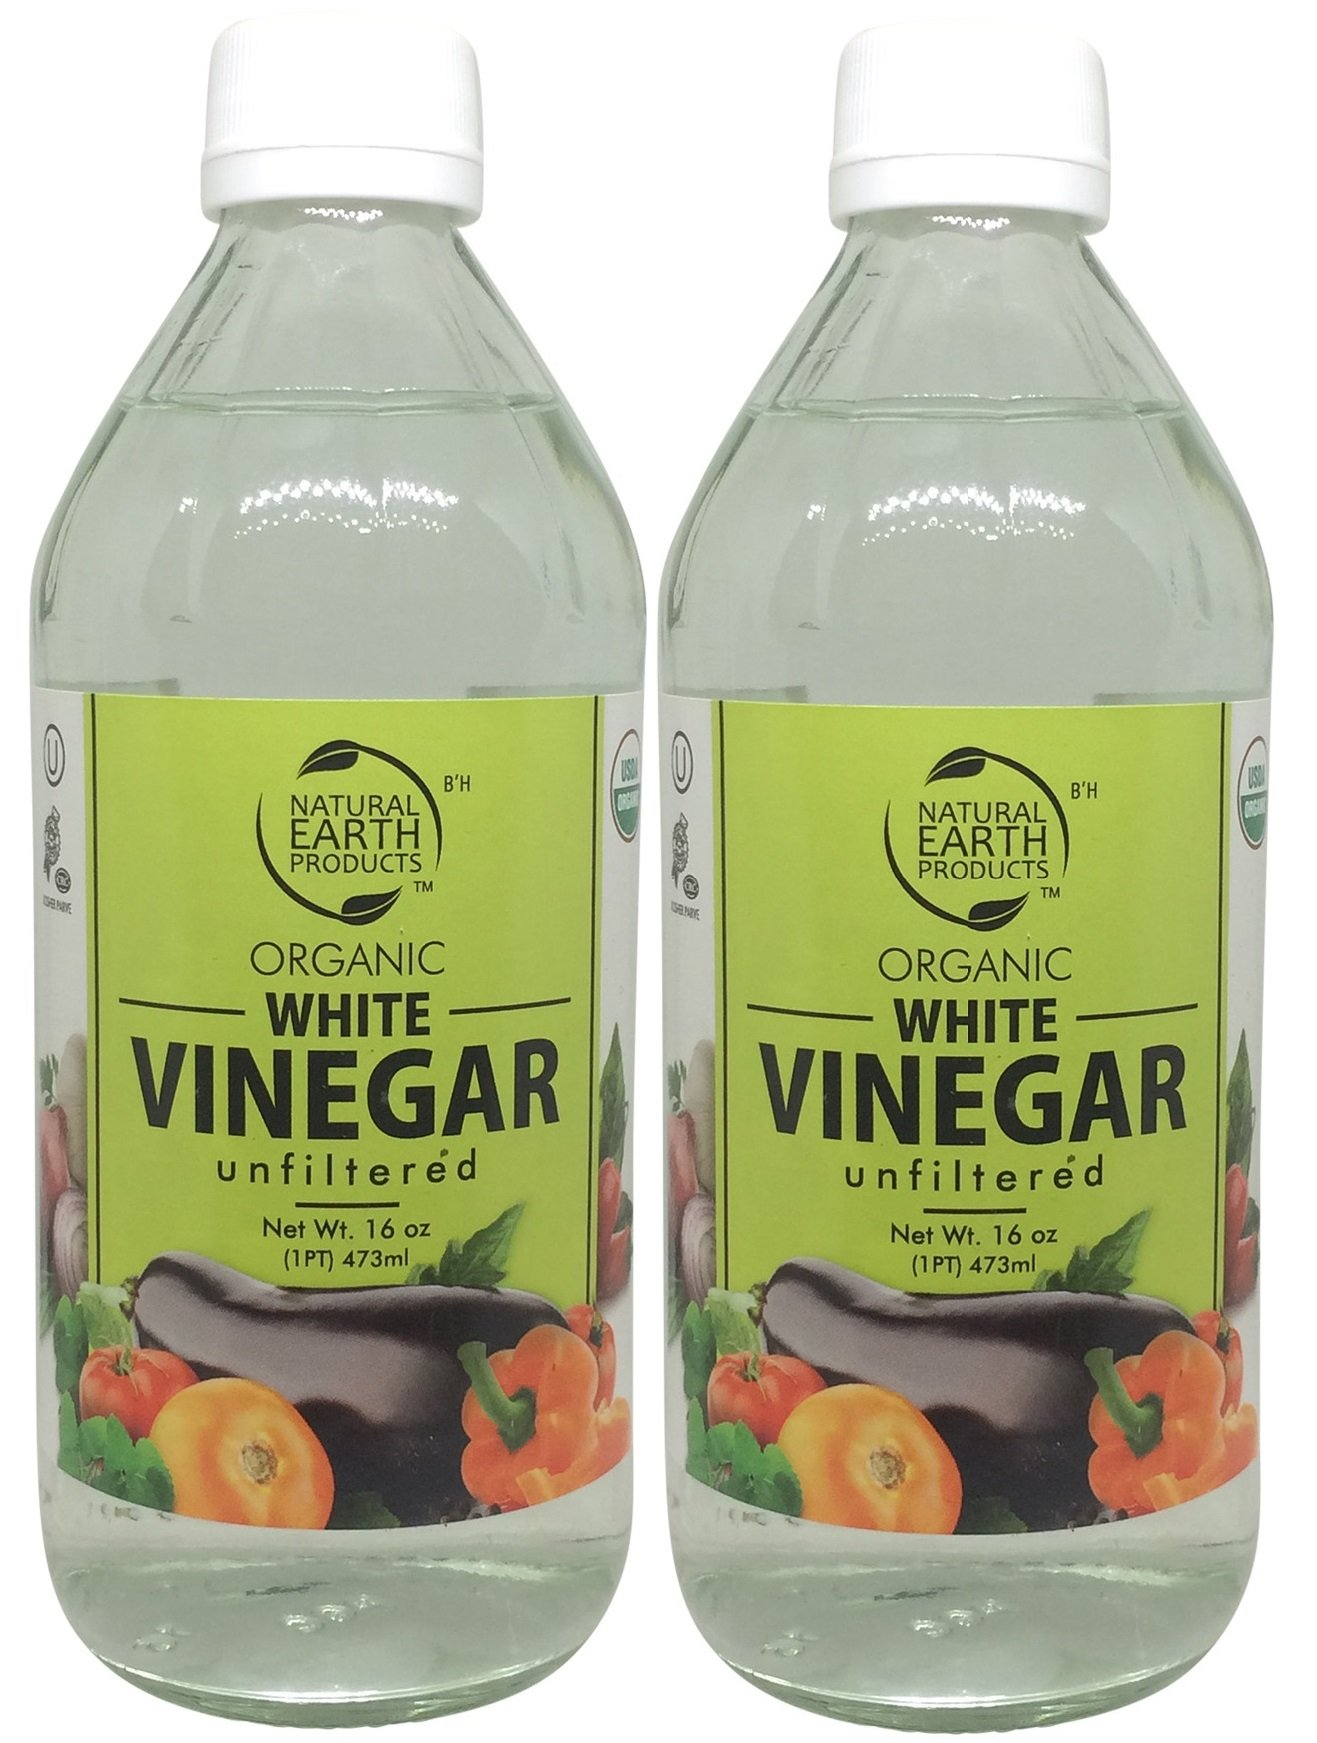 Natural Earth Organic White Vinegar Unfiltered - 100% USDA Organic - Best For All Household Needs and Beyond - Certified Kosher - 2 Pack of 16 Fl. Oz